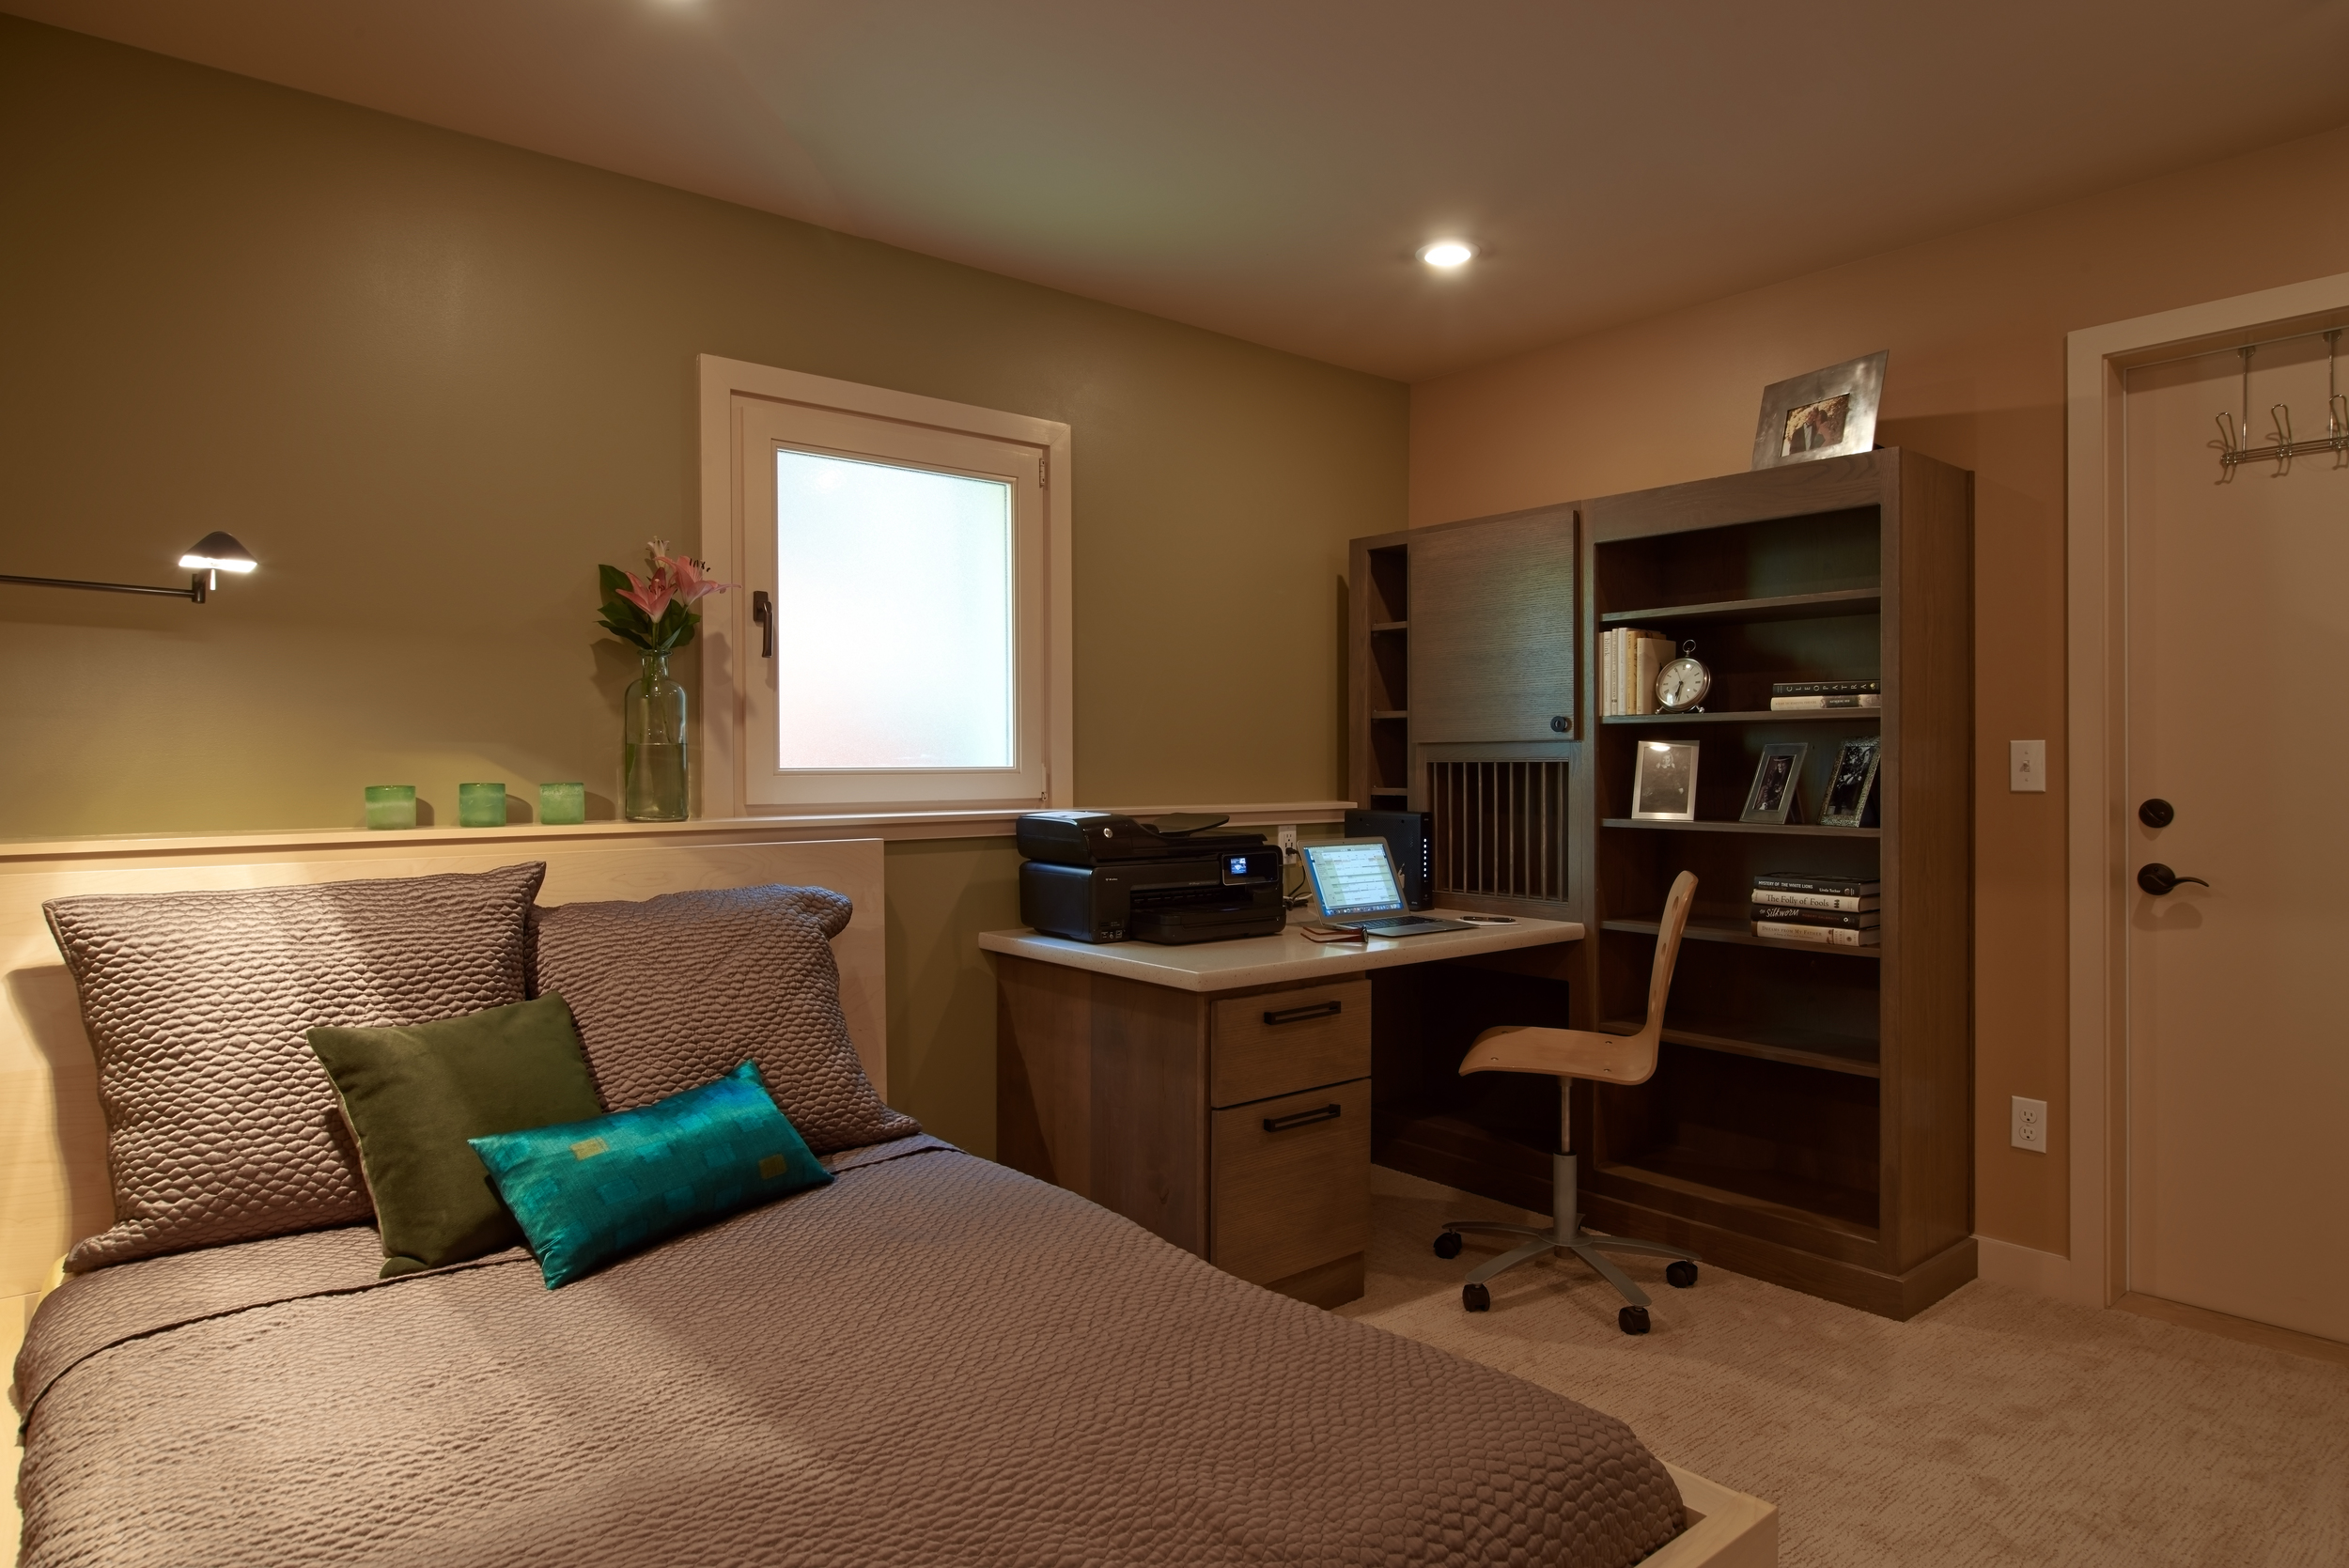 CRD Design Build - ADU bedroom 2.jpg